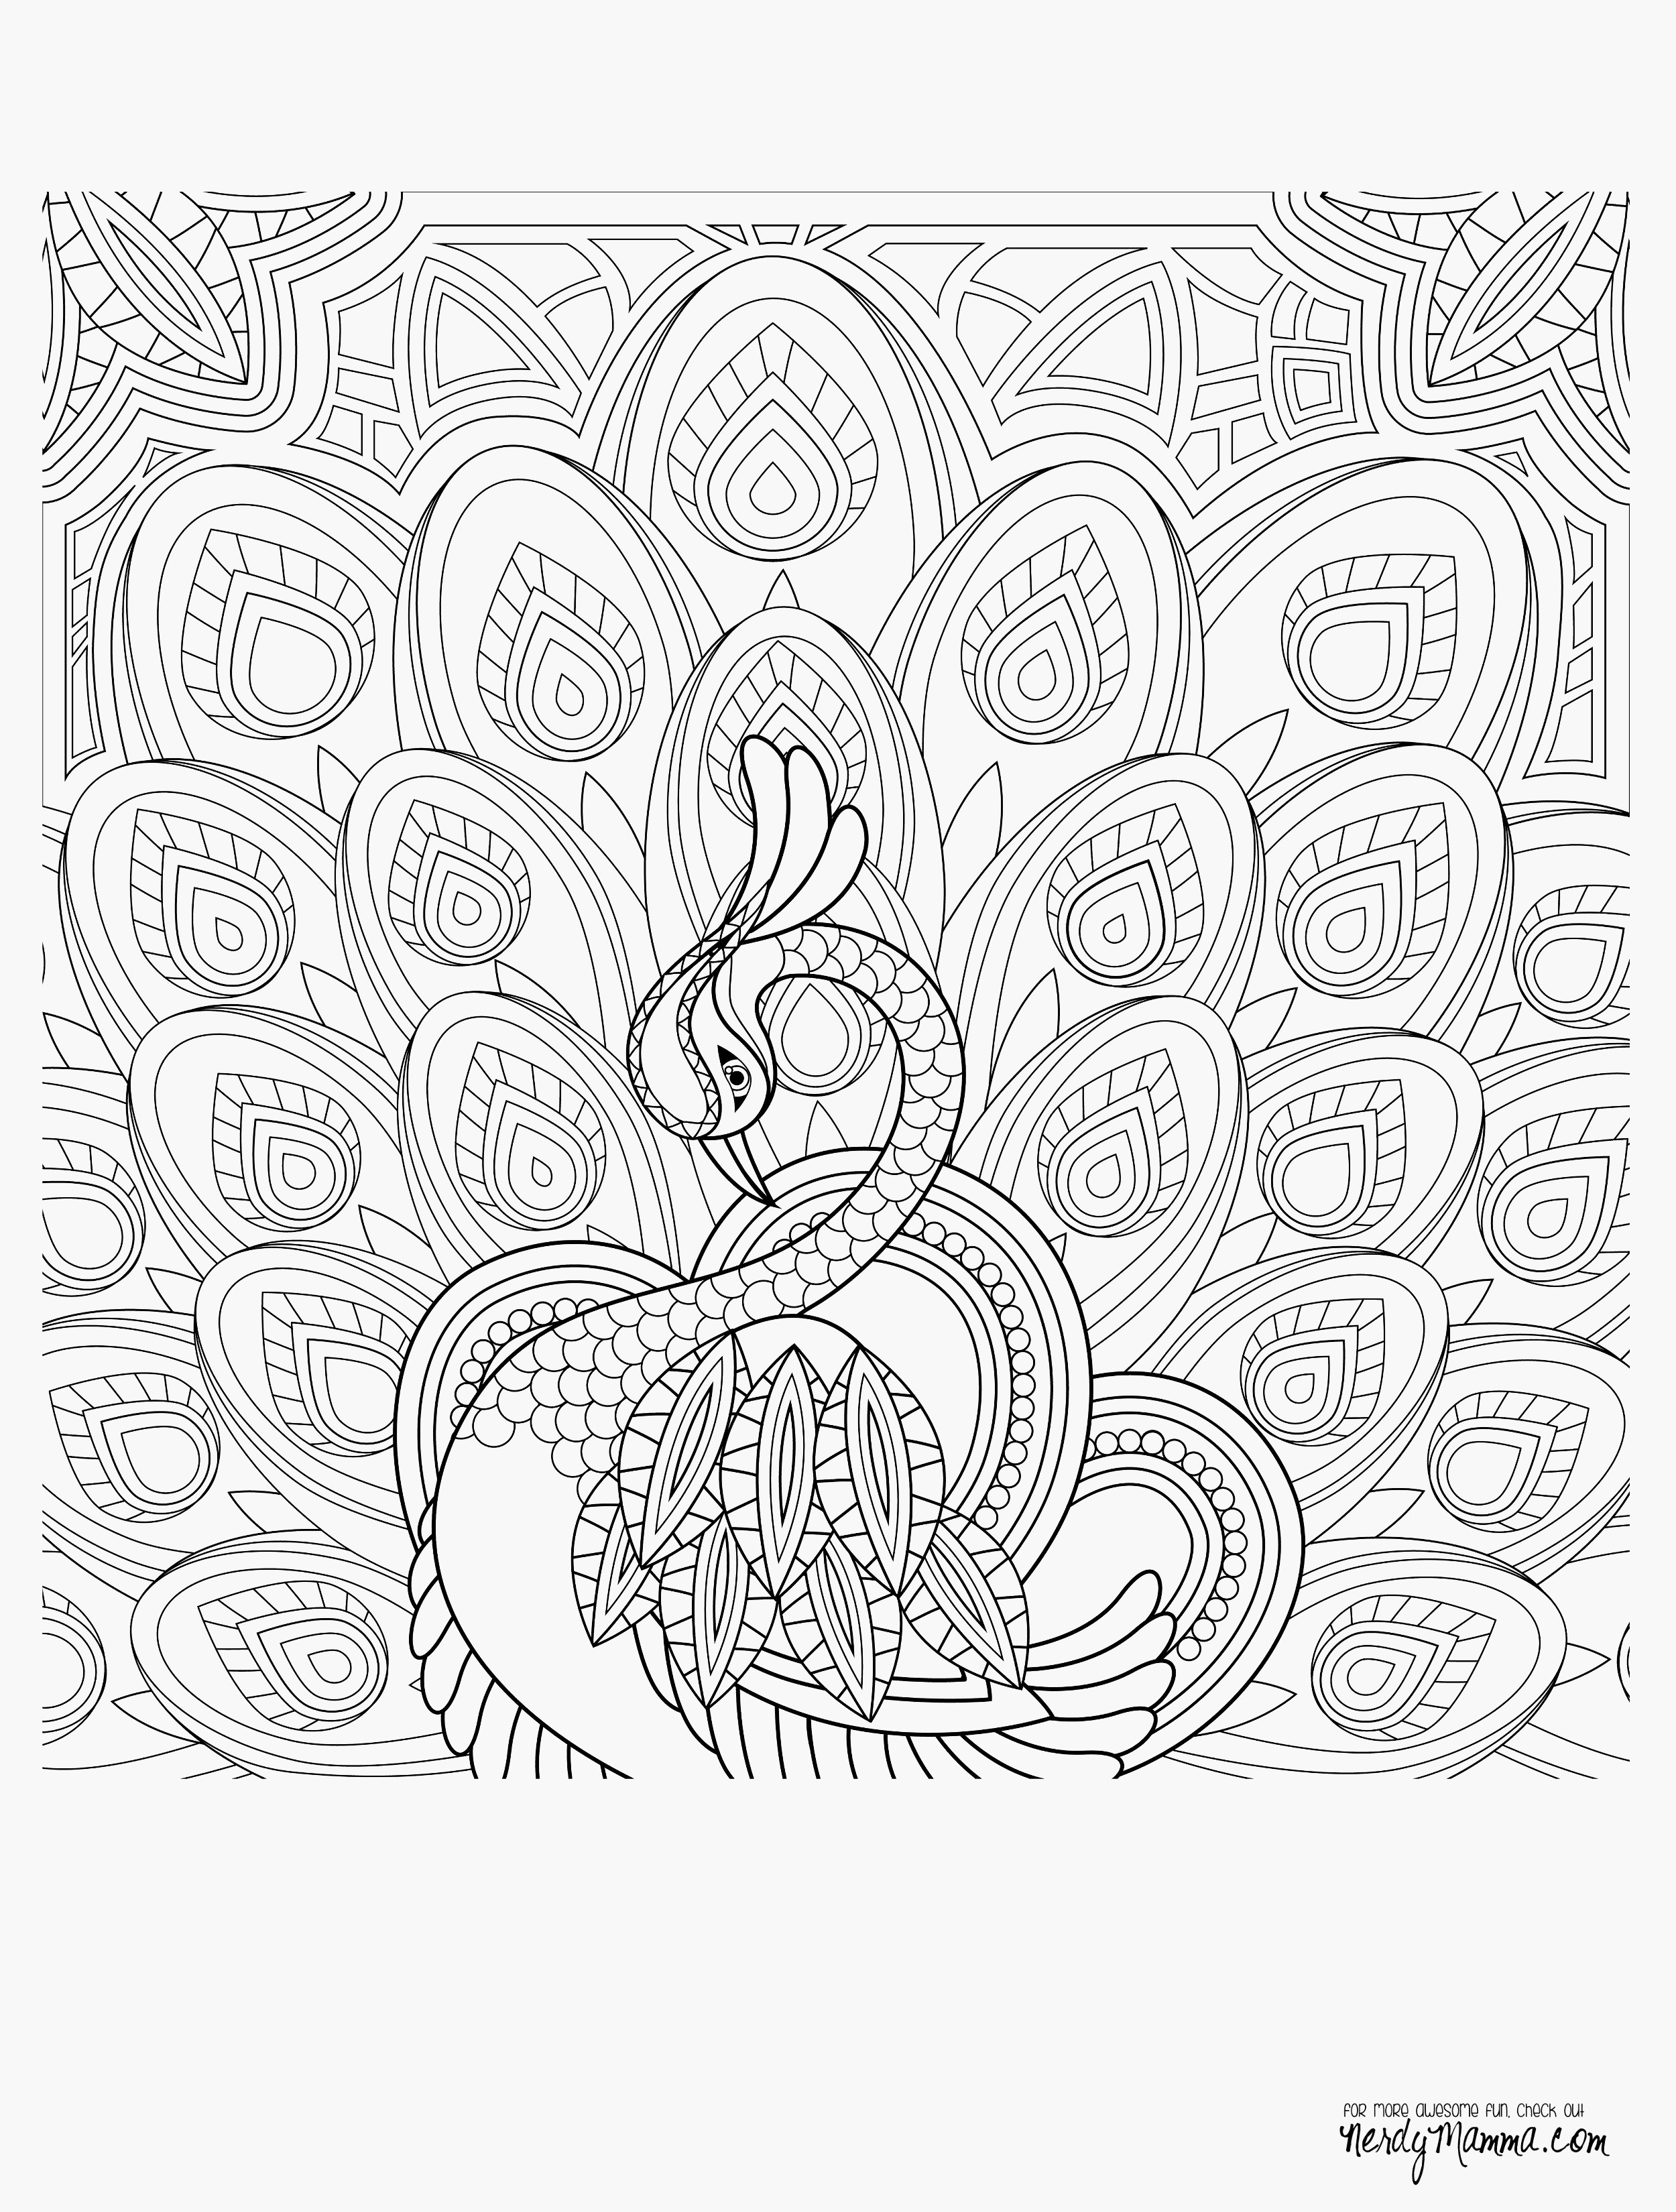 coloring pages of barbie Collection-Elf the Shelf Coloring Pages Free Barbie Car Fresh Coloring Pages Book Beautiful Coloring Book 0d 16-e